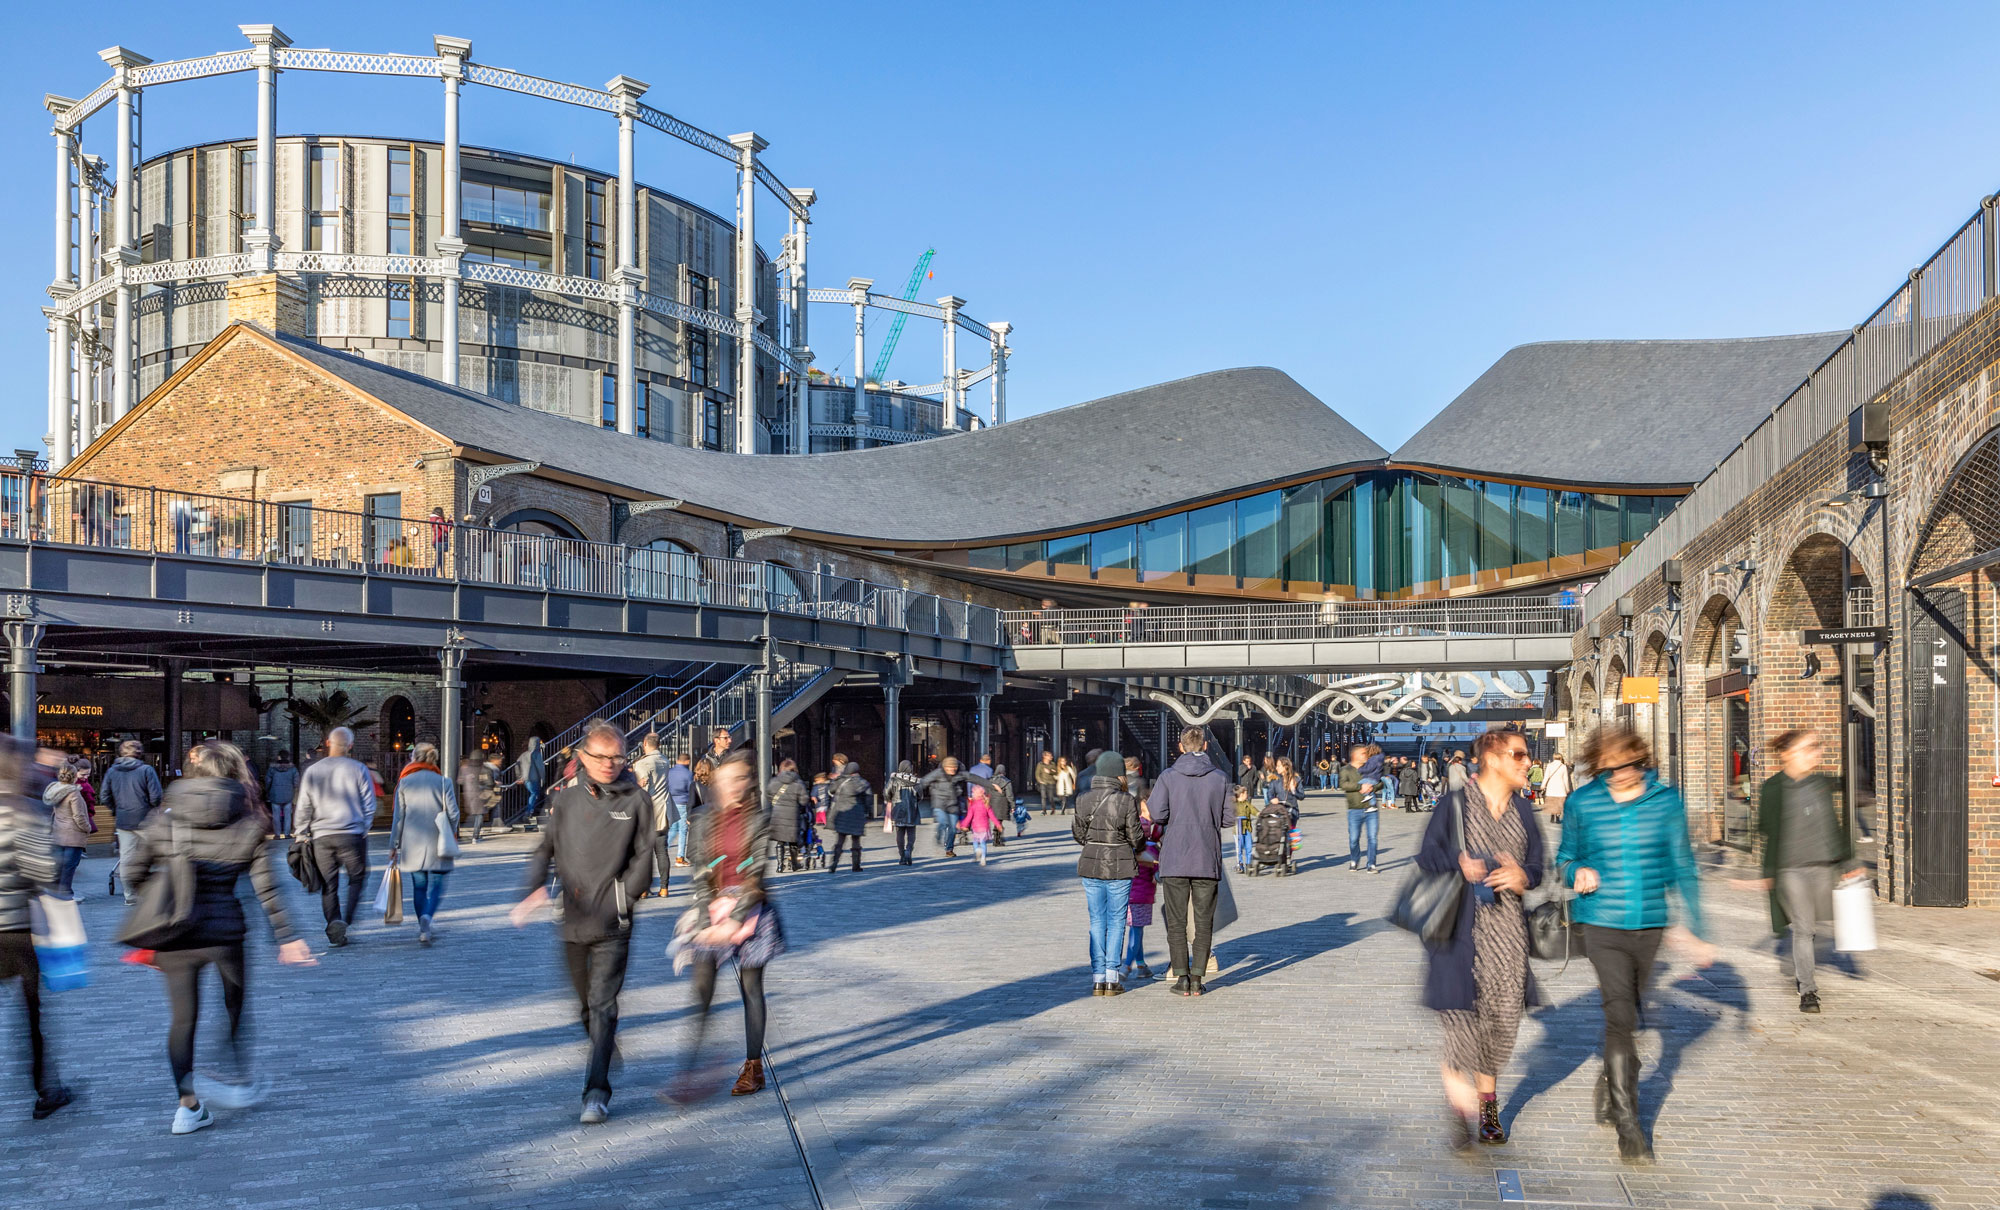 Coal Drops Yard opened in November with a range of high-end shops. The gasworks now contain luxury flats